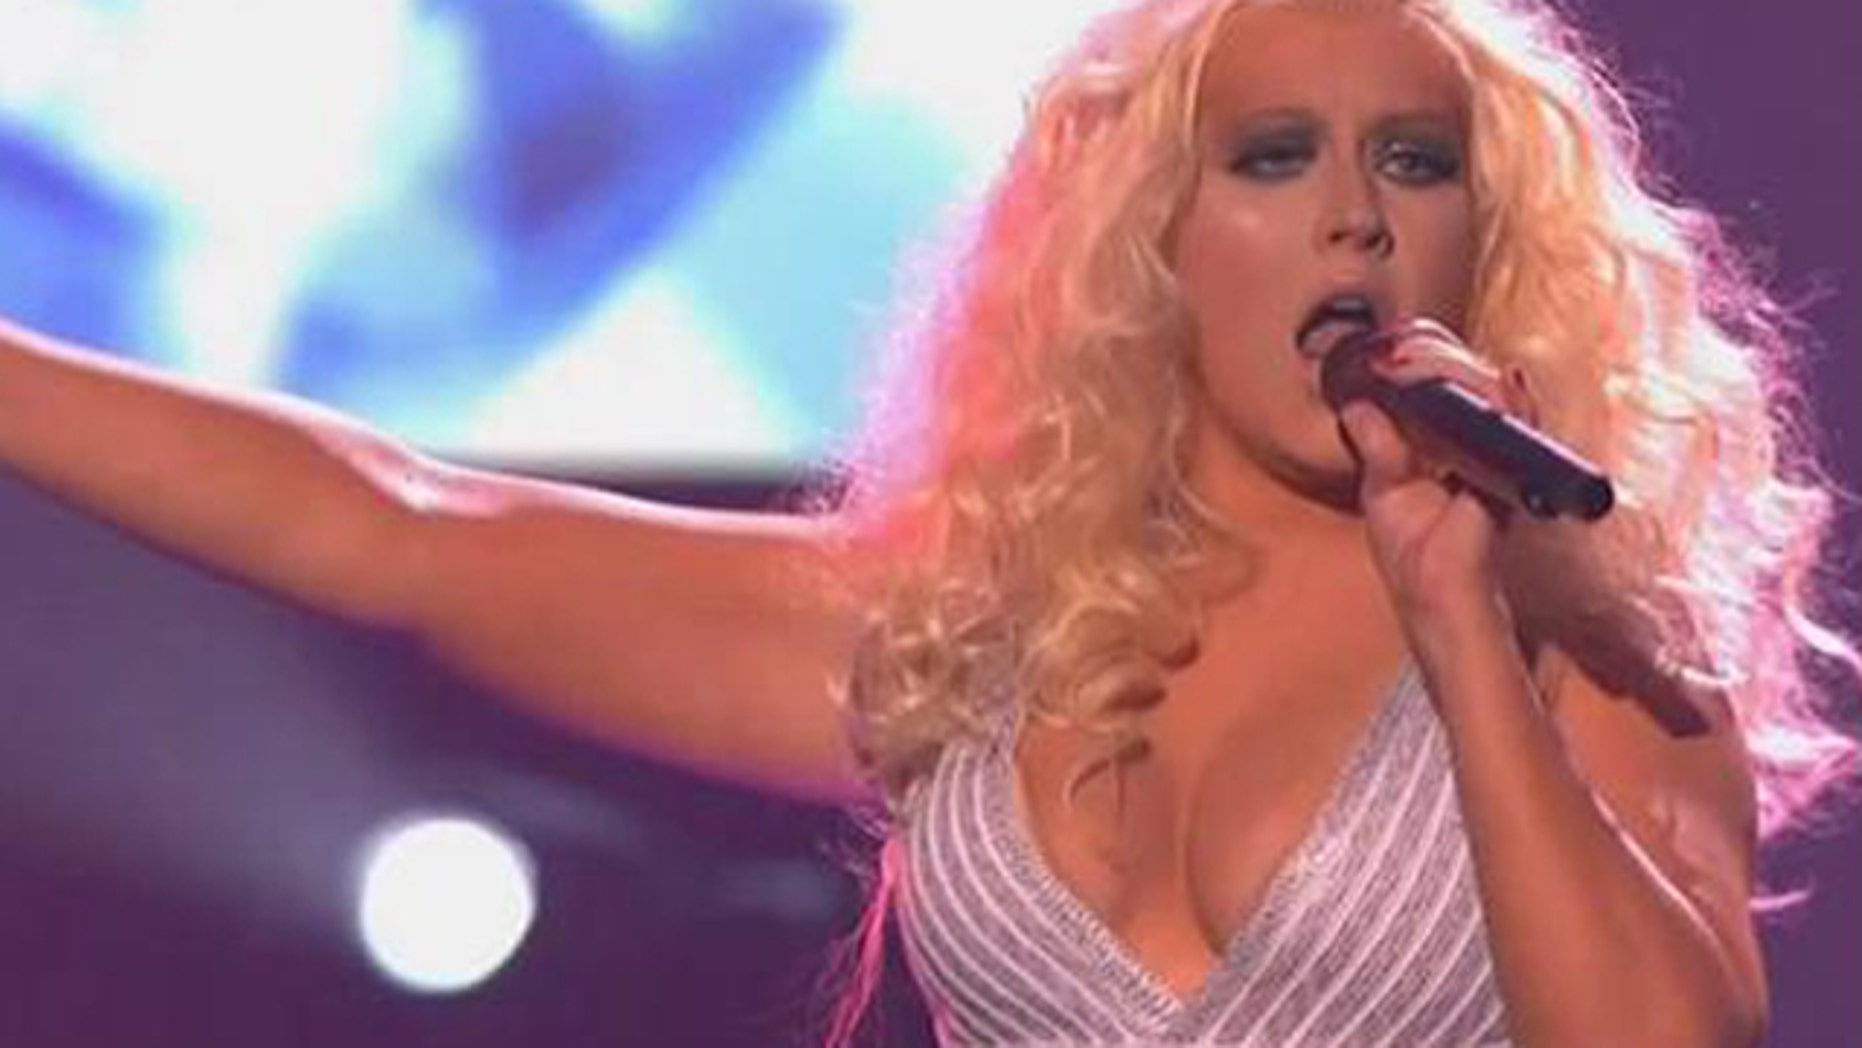 Nov. 20, 2011: Singer Christina Aguilera performs onstage at the 2011 American Music Awards held at Nokia Theatre L.A. LIVE oin Los Angeles, Calif.